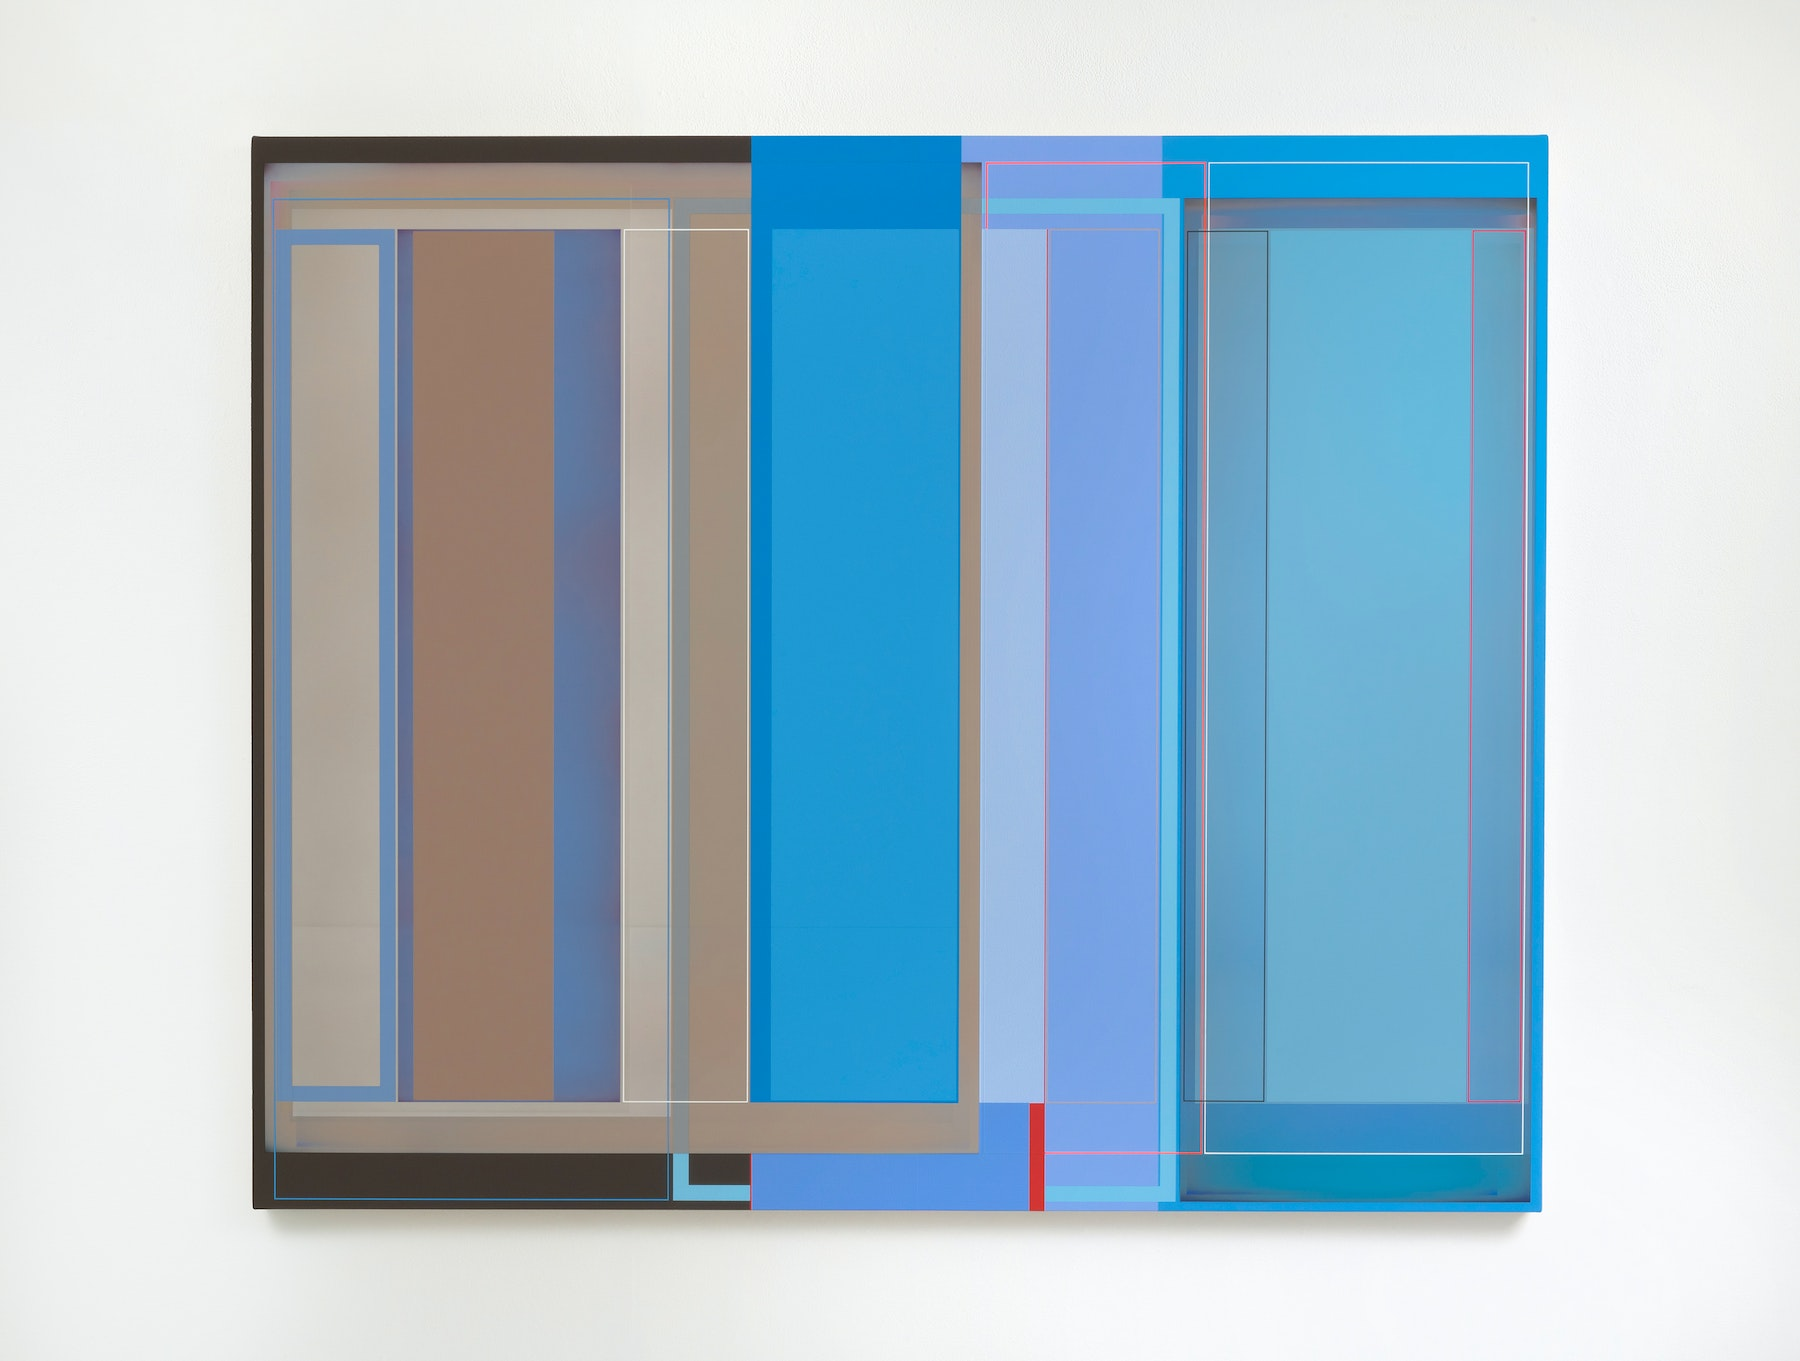 """Patrick Wilson """"Time and Place,"""" 2020 Acrylic on canvas 49"""" x 59"""" [HxW] (124.46 x 149.86 cm) Inventory #WIL568 Courtesy of the artist and Vielmetter Los Angeles Photo credit: Robert Wedemeyer"""